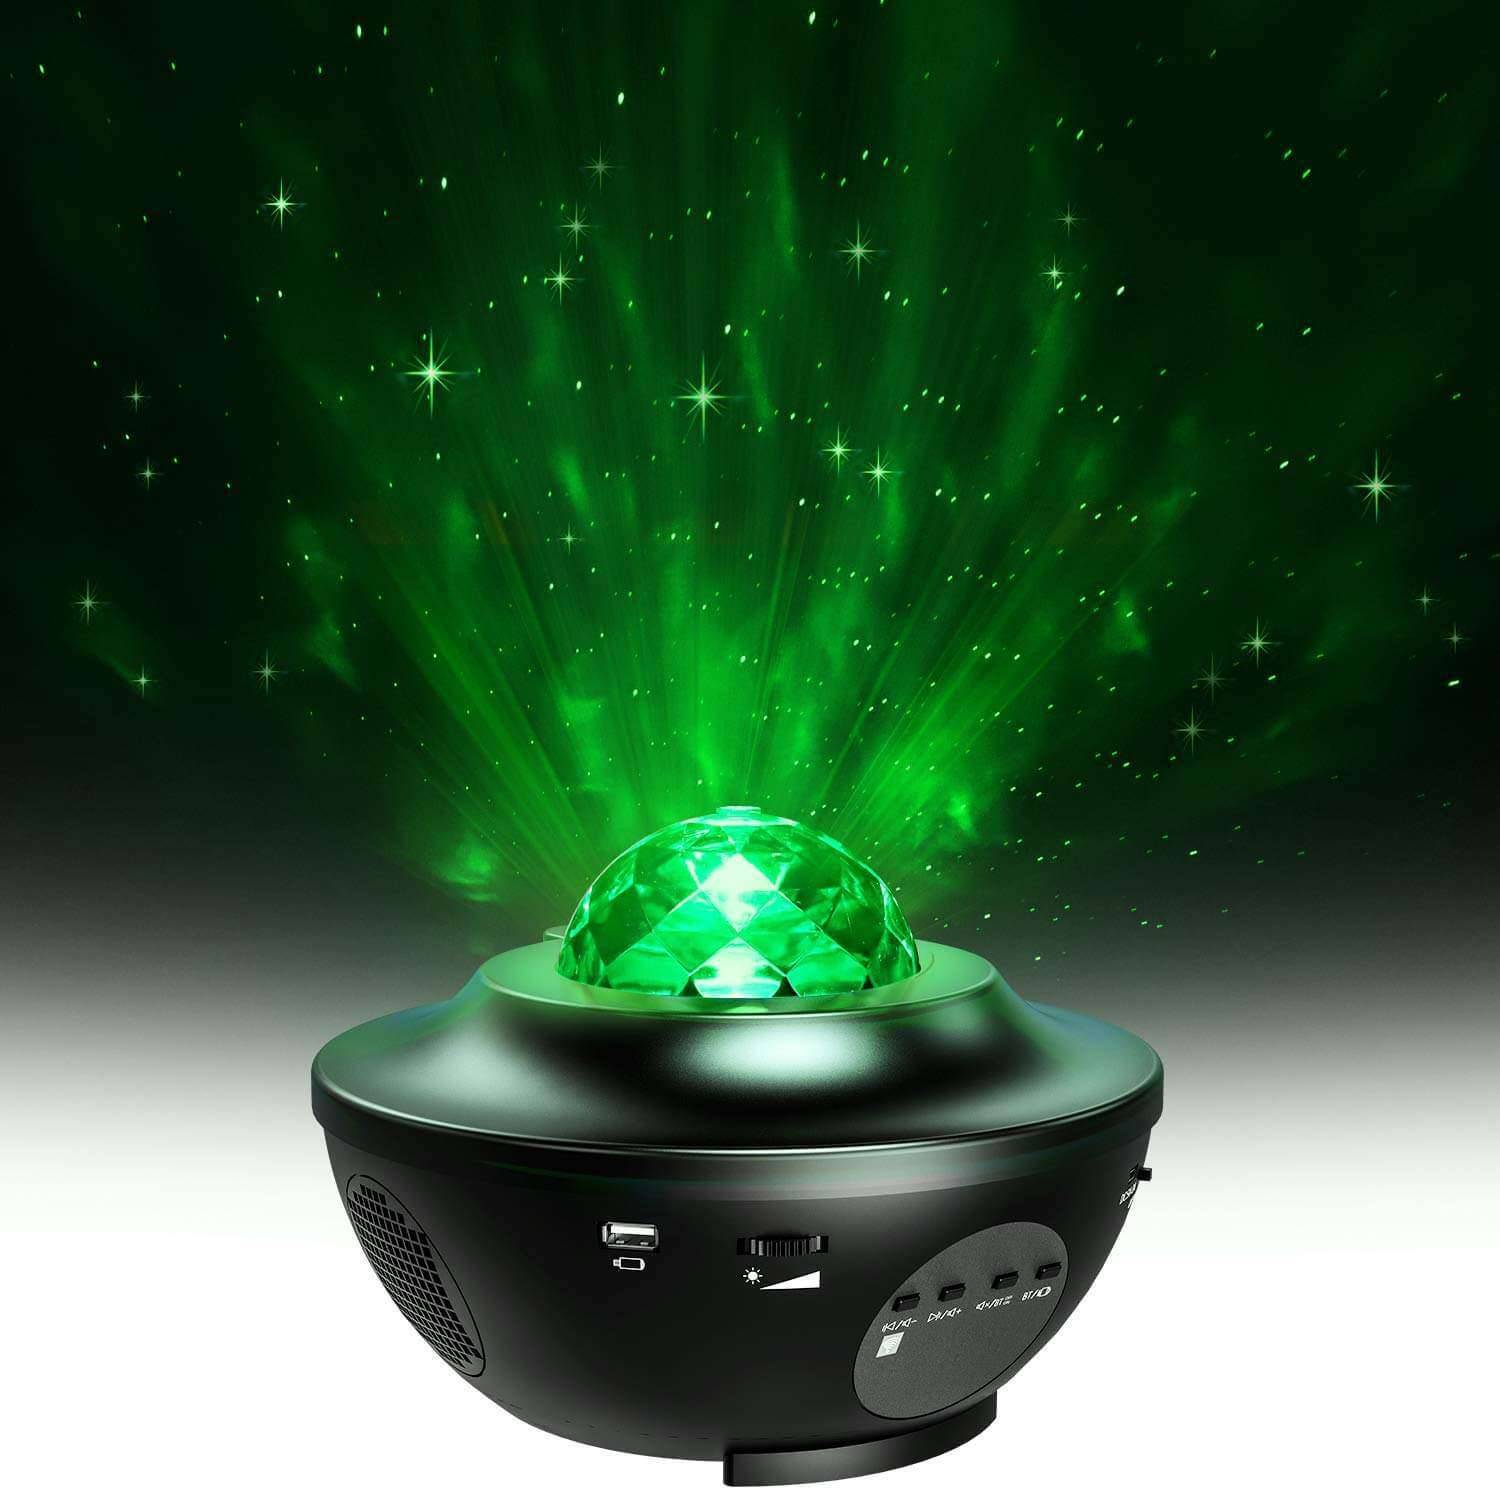 Elecstars Store Ocean Wave Baby Night Light Projector with Music for Bedroom Nighttime Sleep Aid